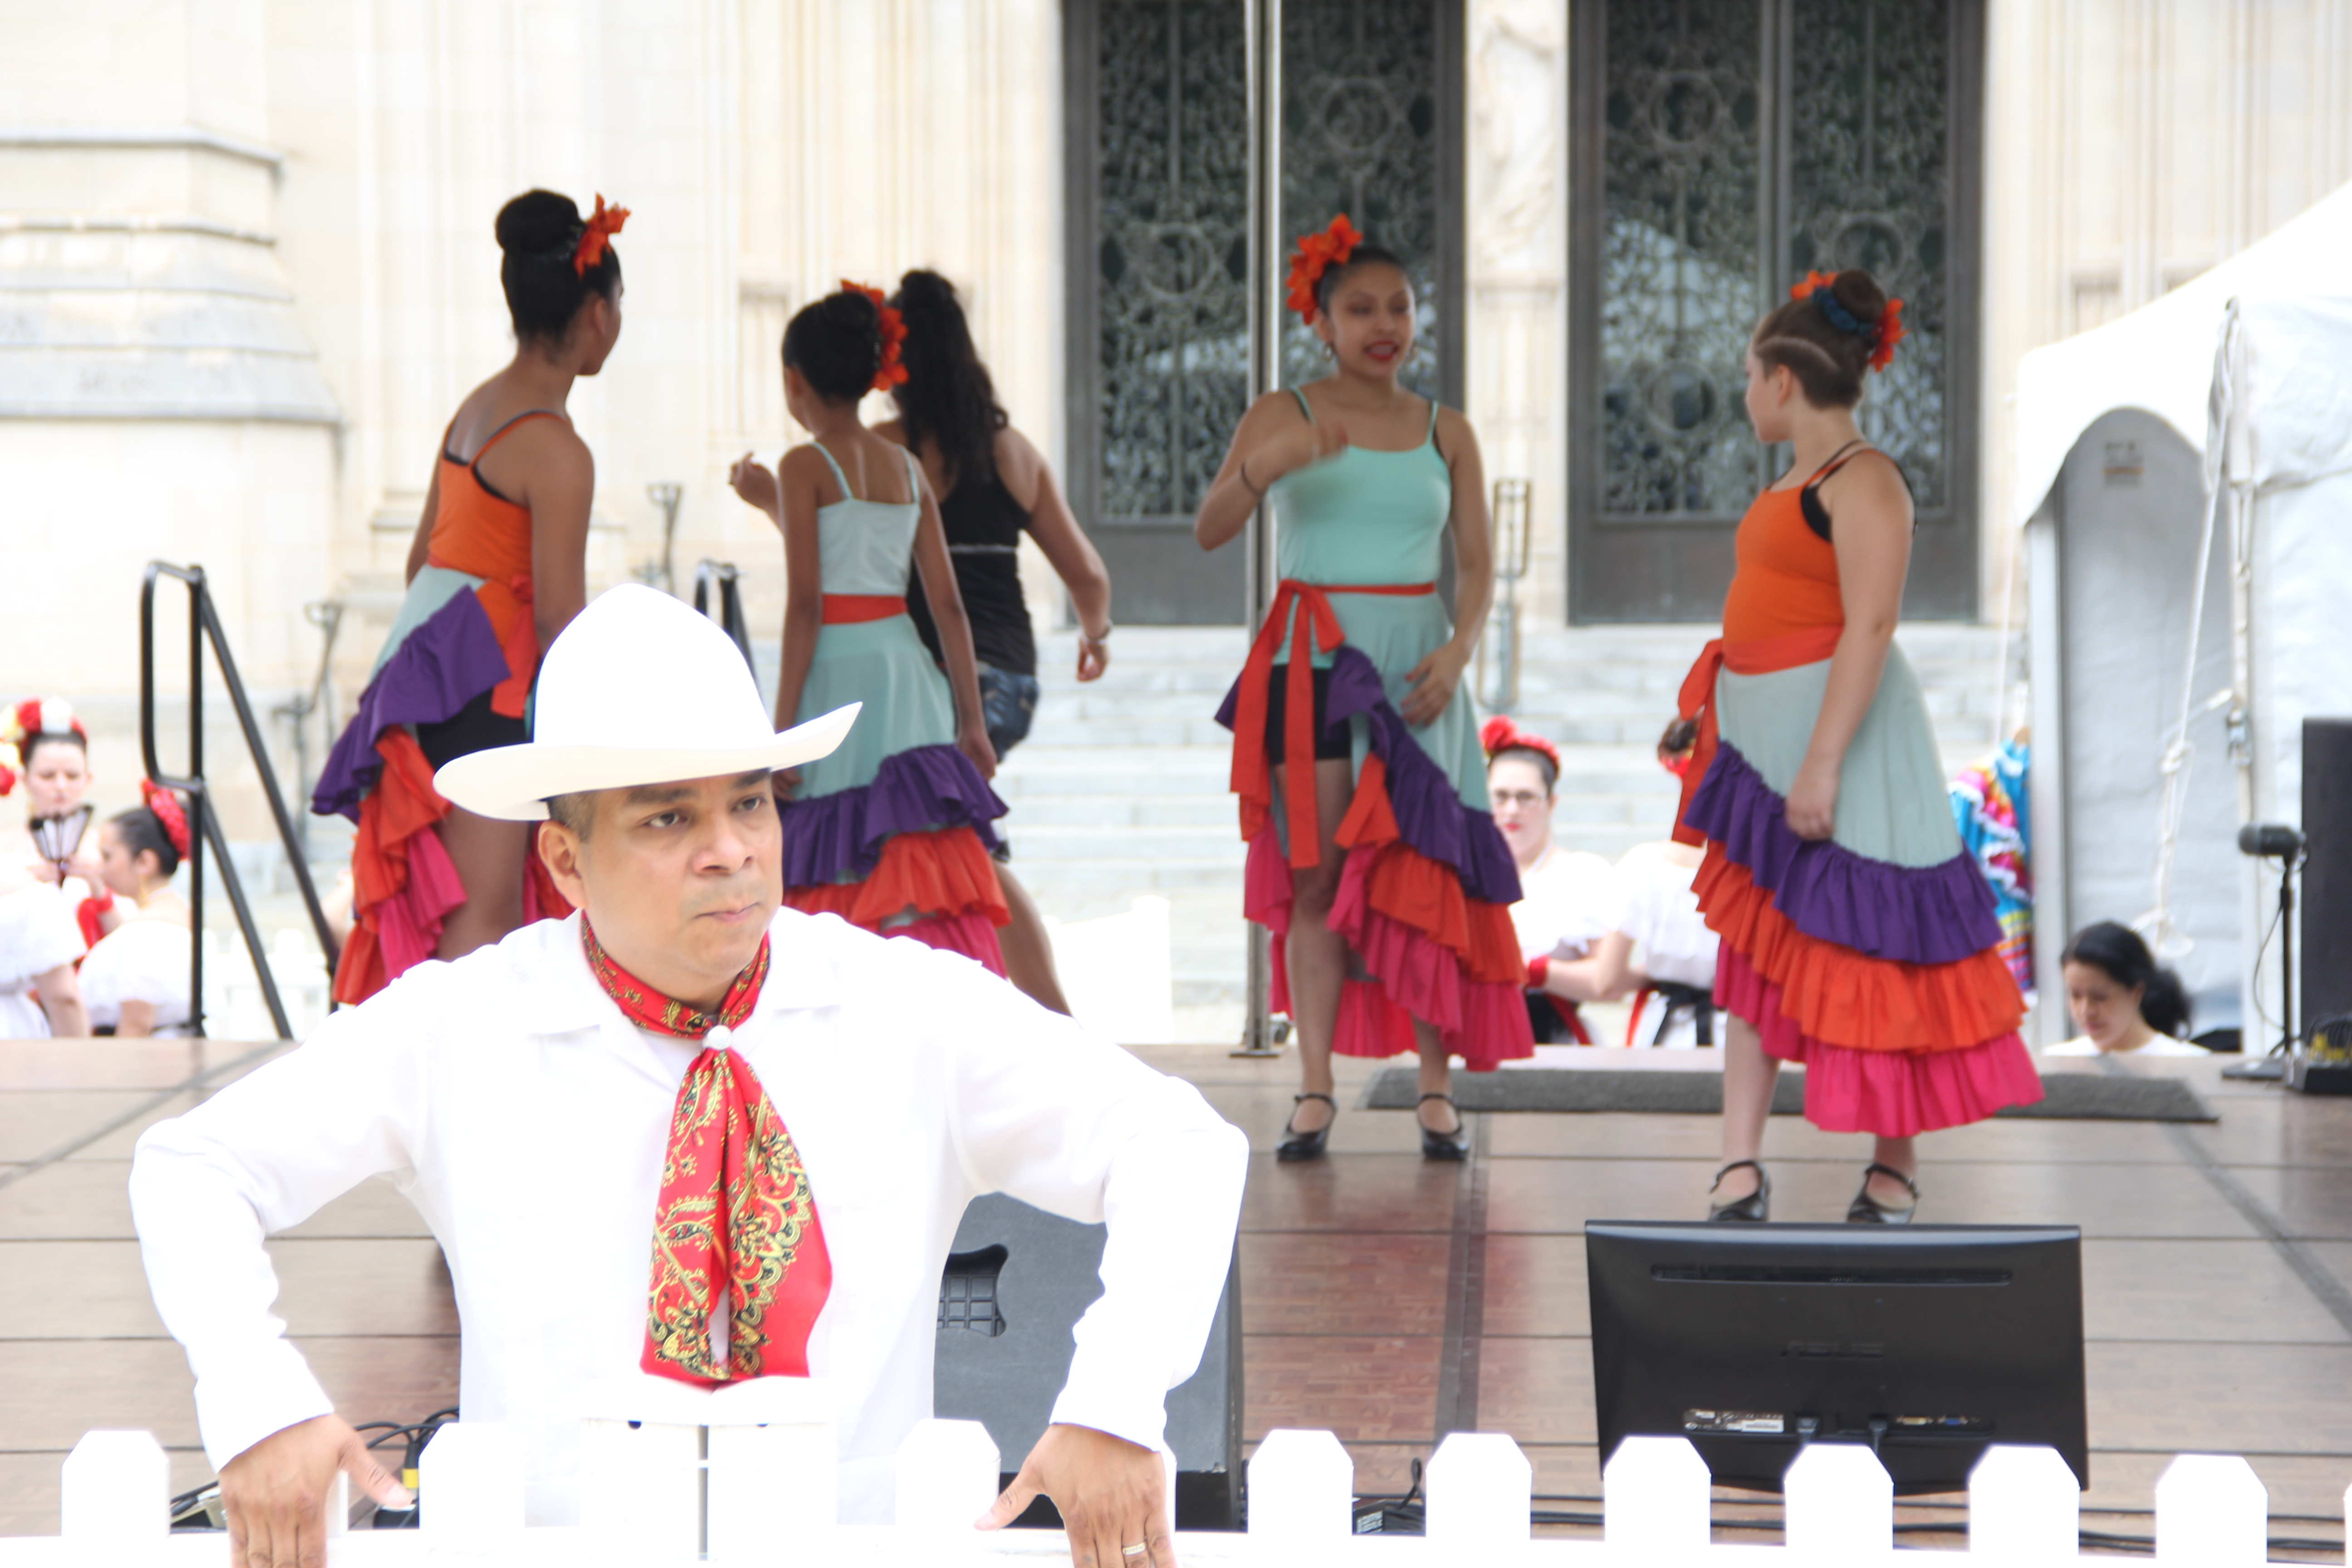 """Baltimore's """"Bailes de Mi Tierra"""" Mexican folk dance group warms up before a performance at the One Journey Festival in support of refugees, Washington, June 2, 2018. (V. Macchi/VOA)"""